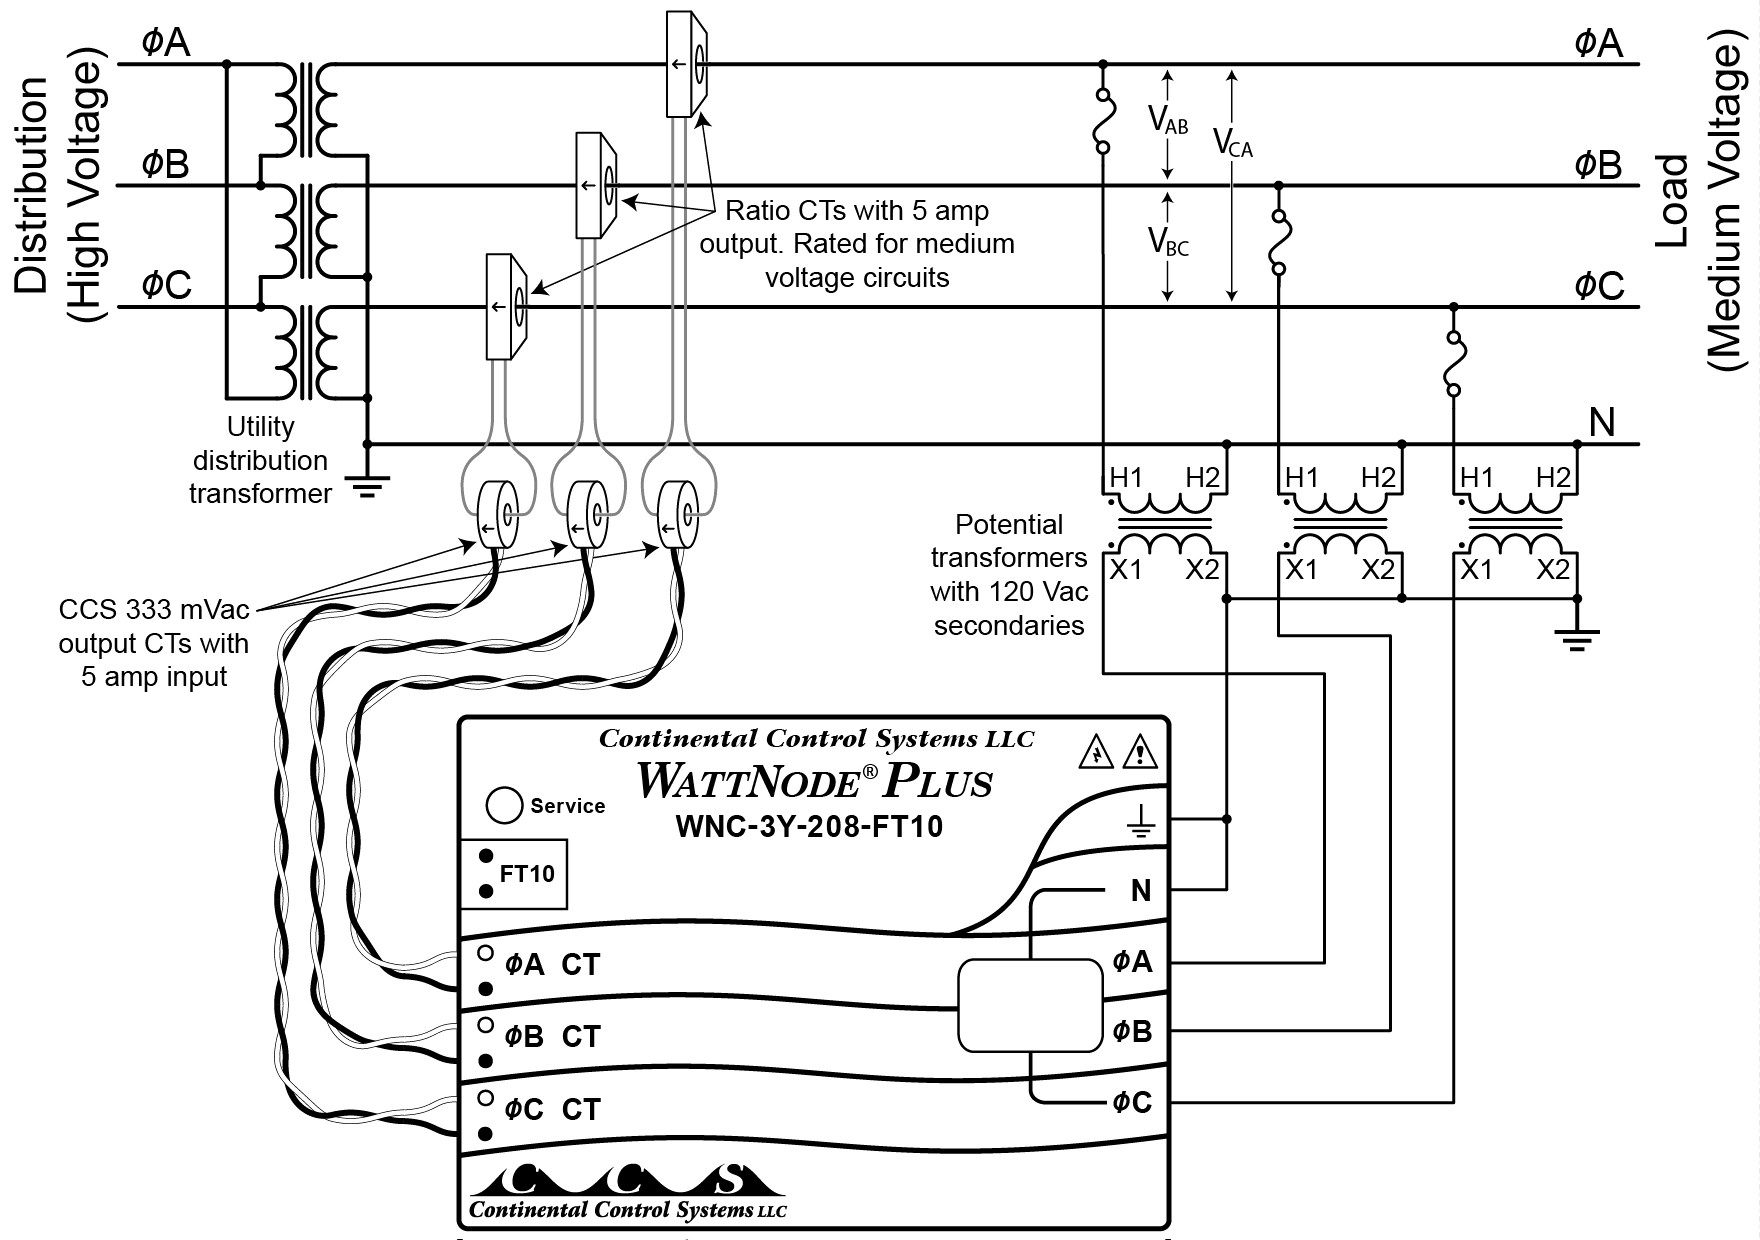 hight resolution of 75 kva transformer wiring diagram